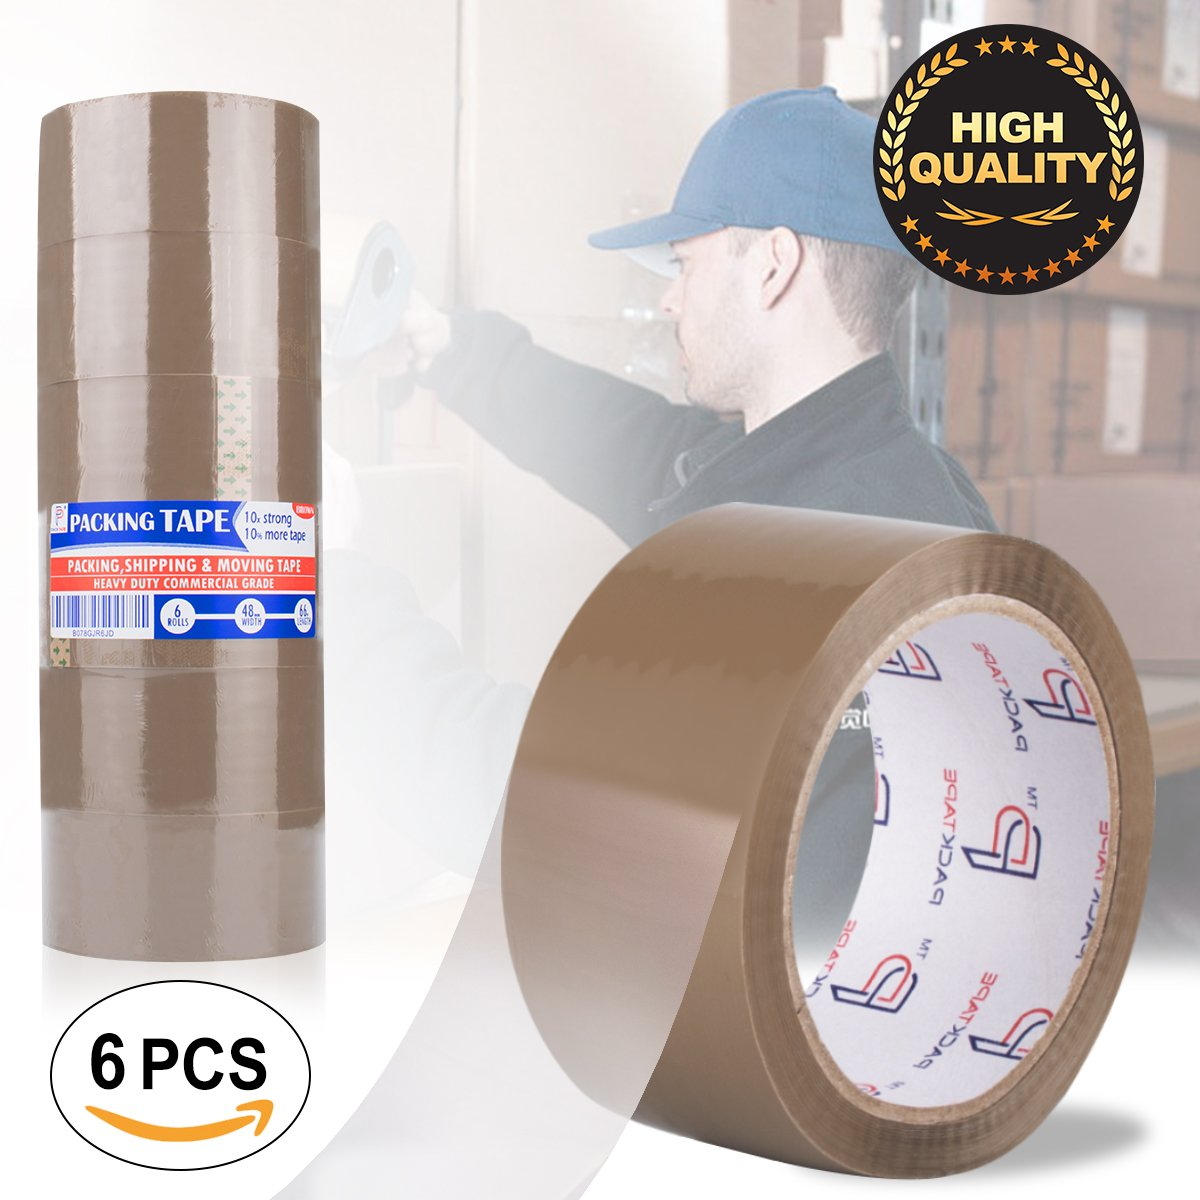 Shipping Tape,Packing Tape Browntape Heavy Duty Tape Packaging Tape Rolls for Shipping,Packaging,Moving,Office,Storage (Brown)